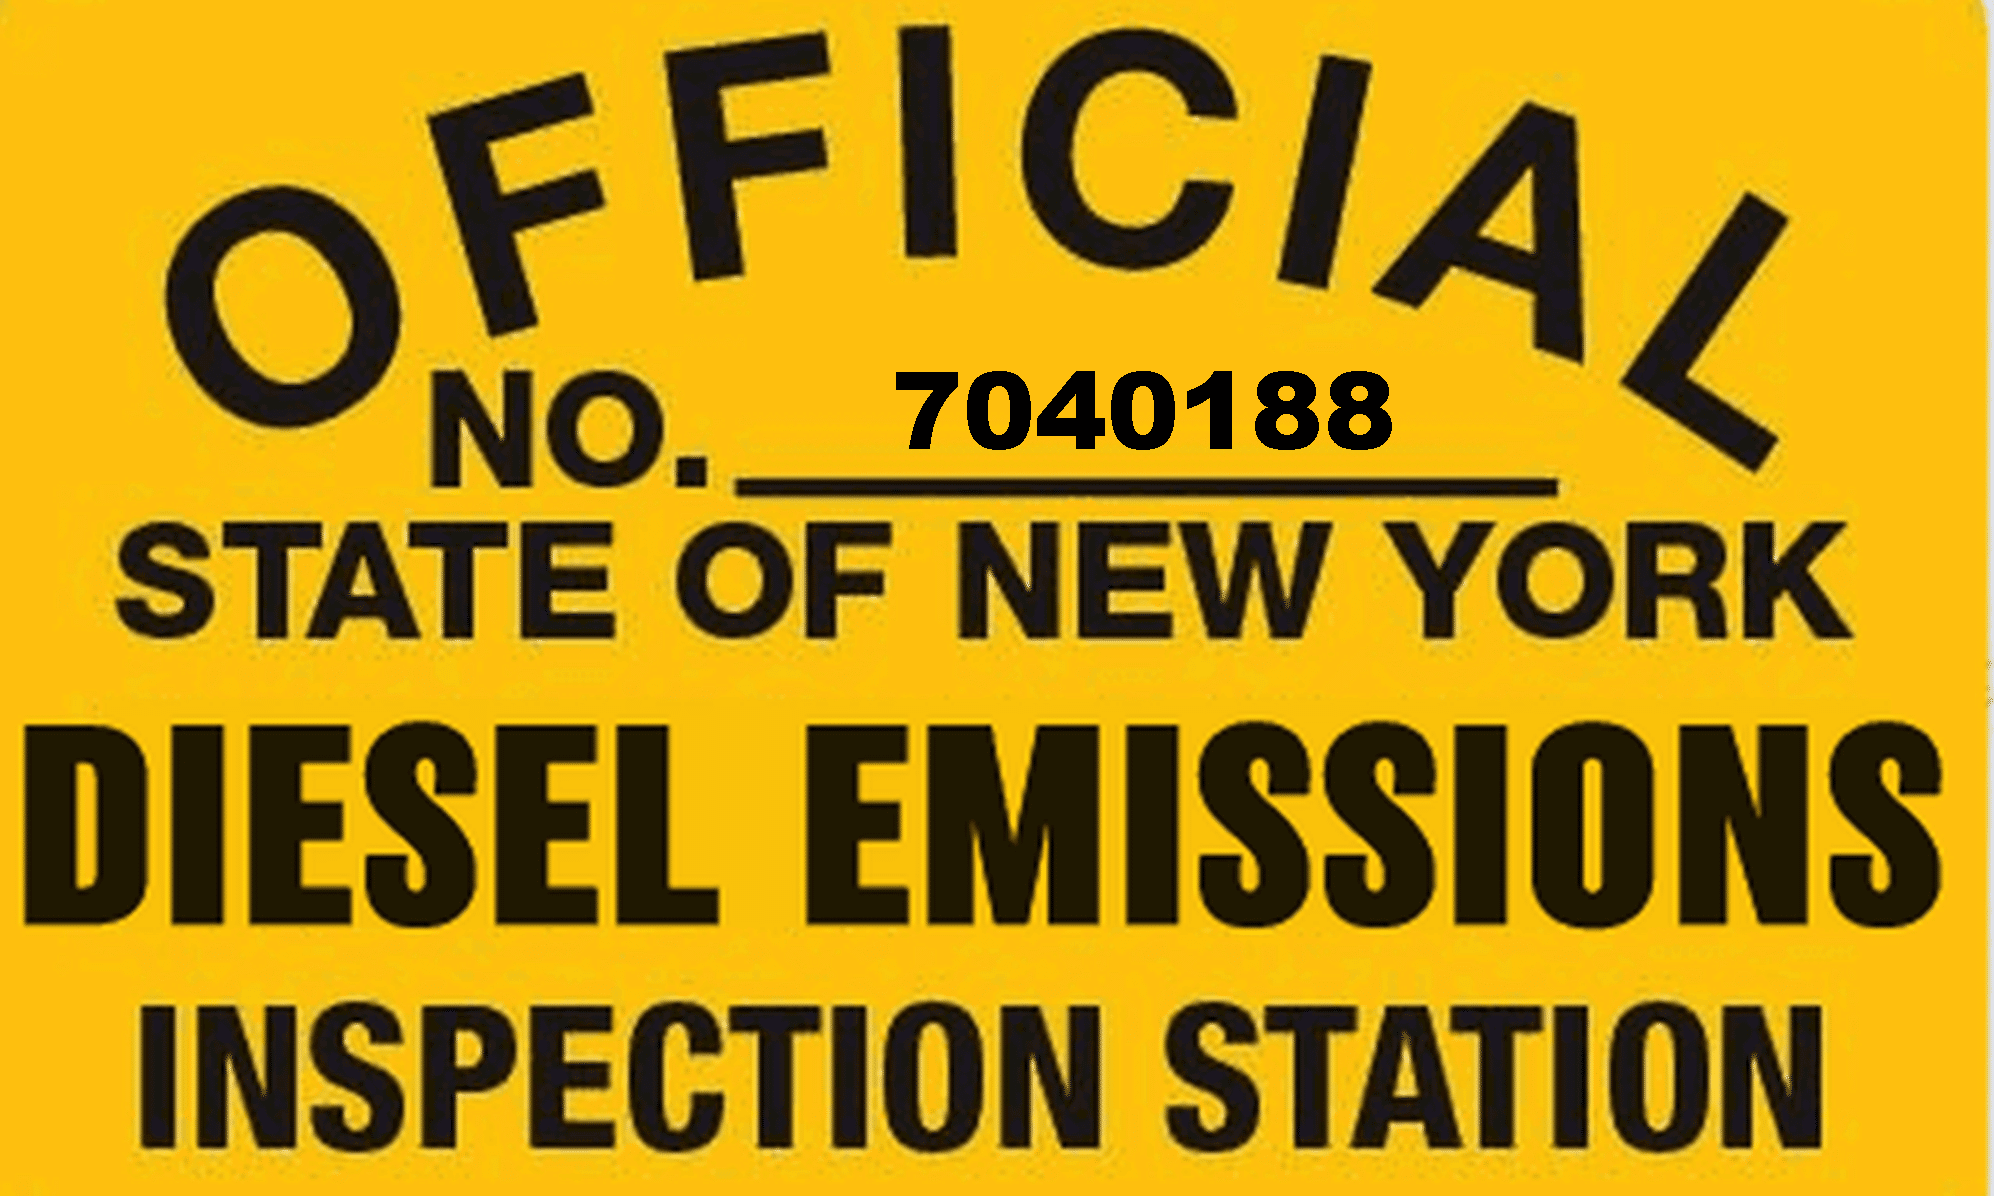 NYS Diesel Emissions Station Glendale NY